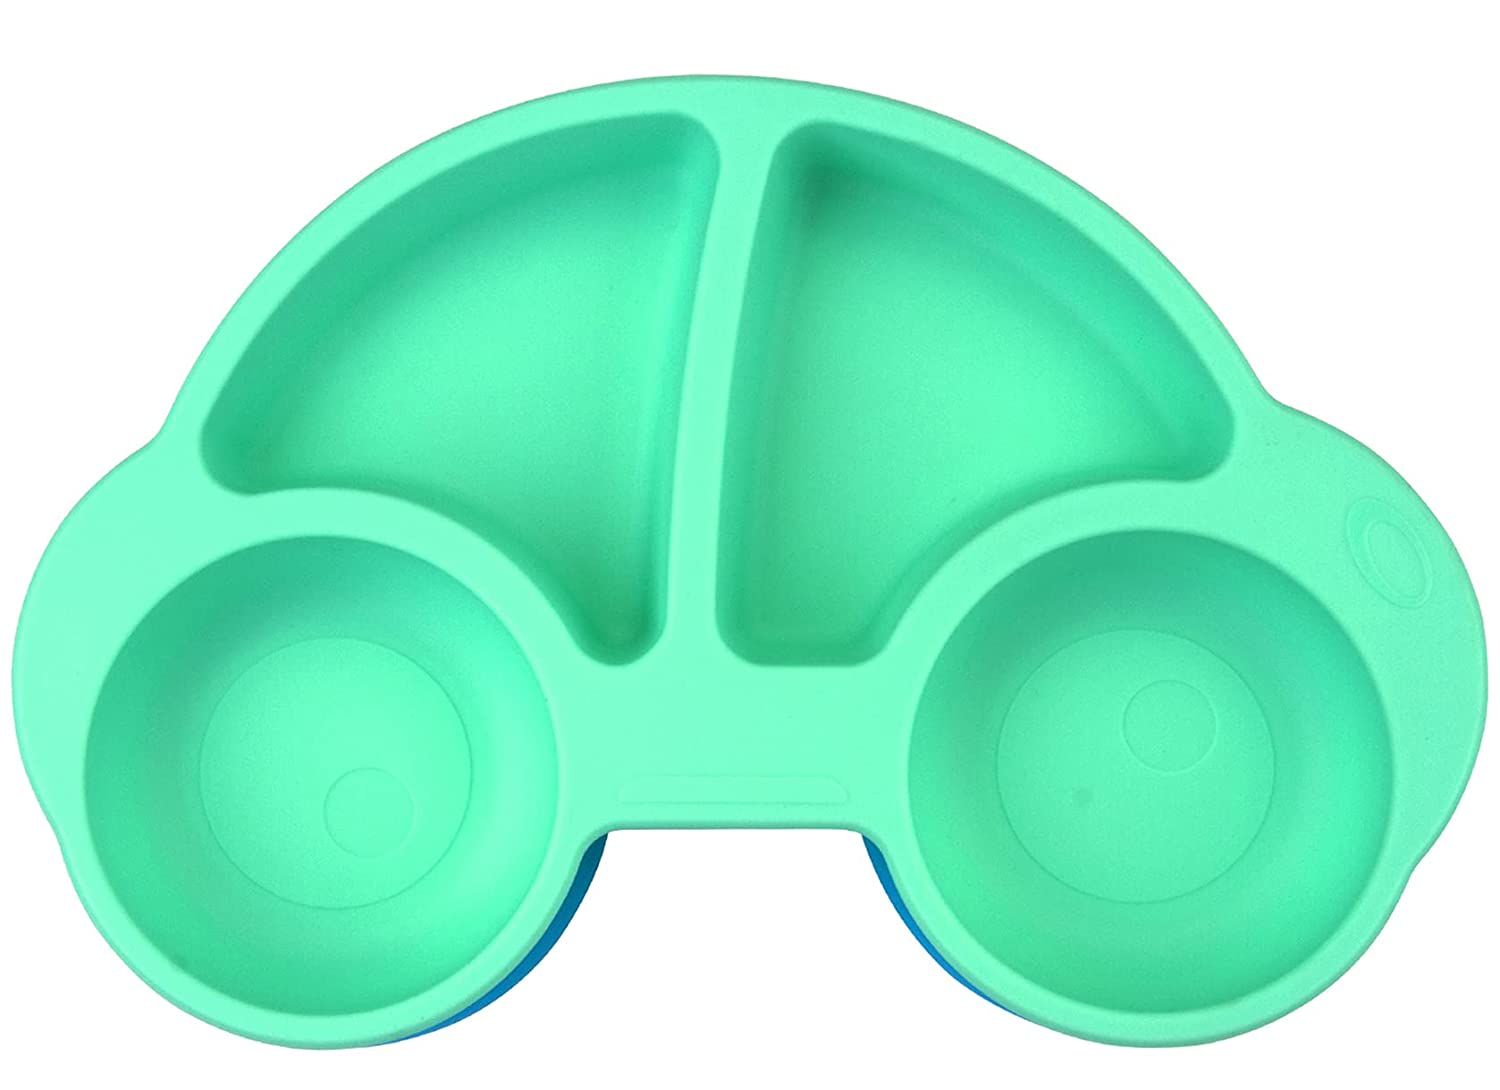 Silicone Divided Toddler Plates - Portable Non Slip Suction Plates for Children Babies and Kids BPA Free Baby Dinner Plate